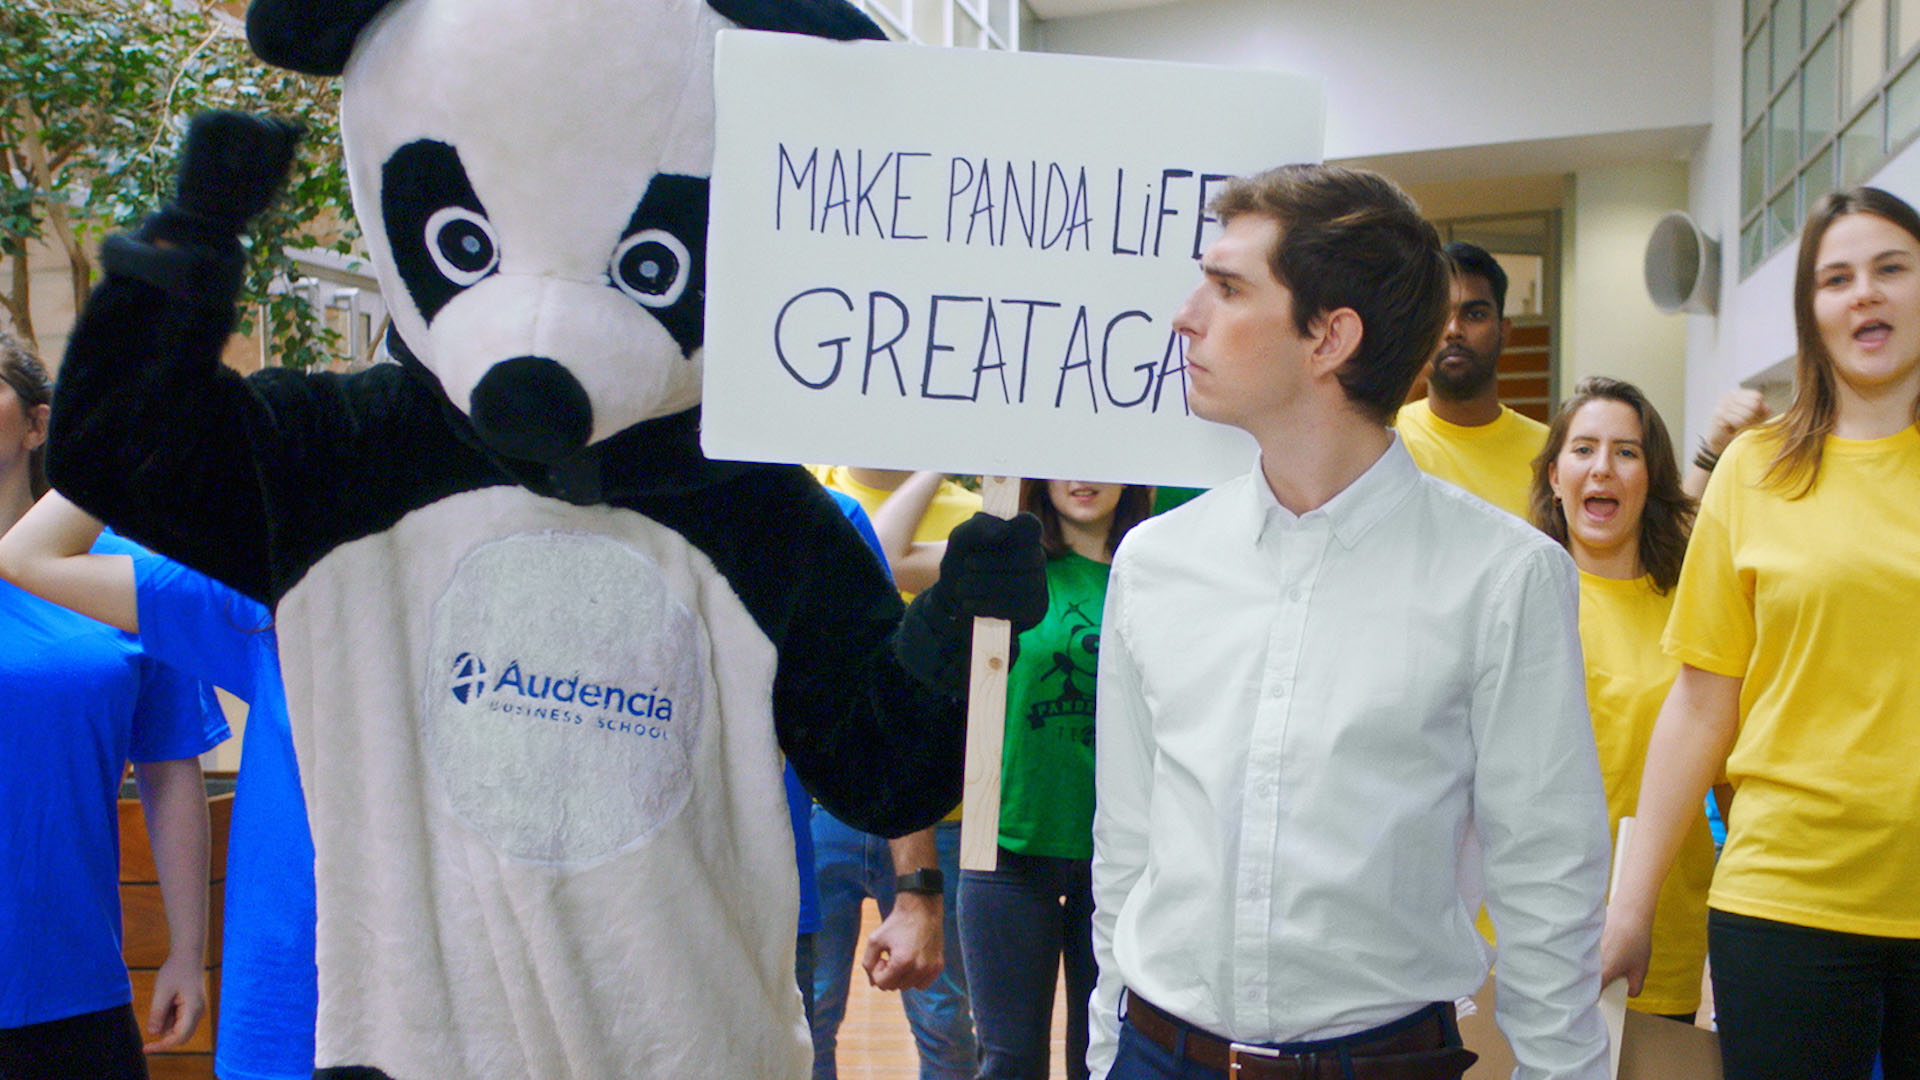 Audencia – Never Stop Daring<br/> Agence : Campus.com